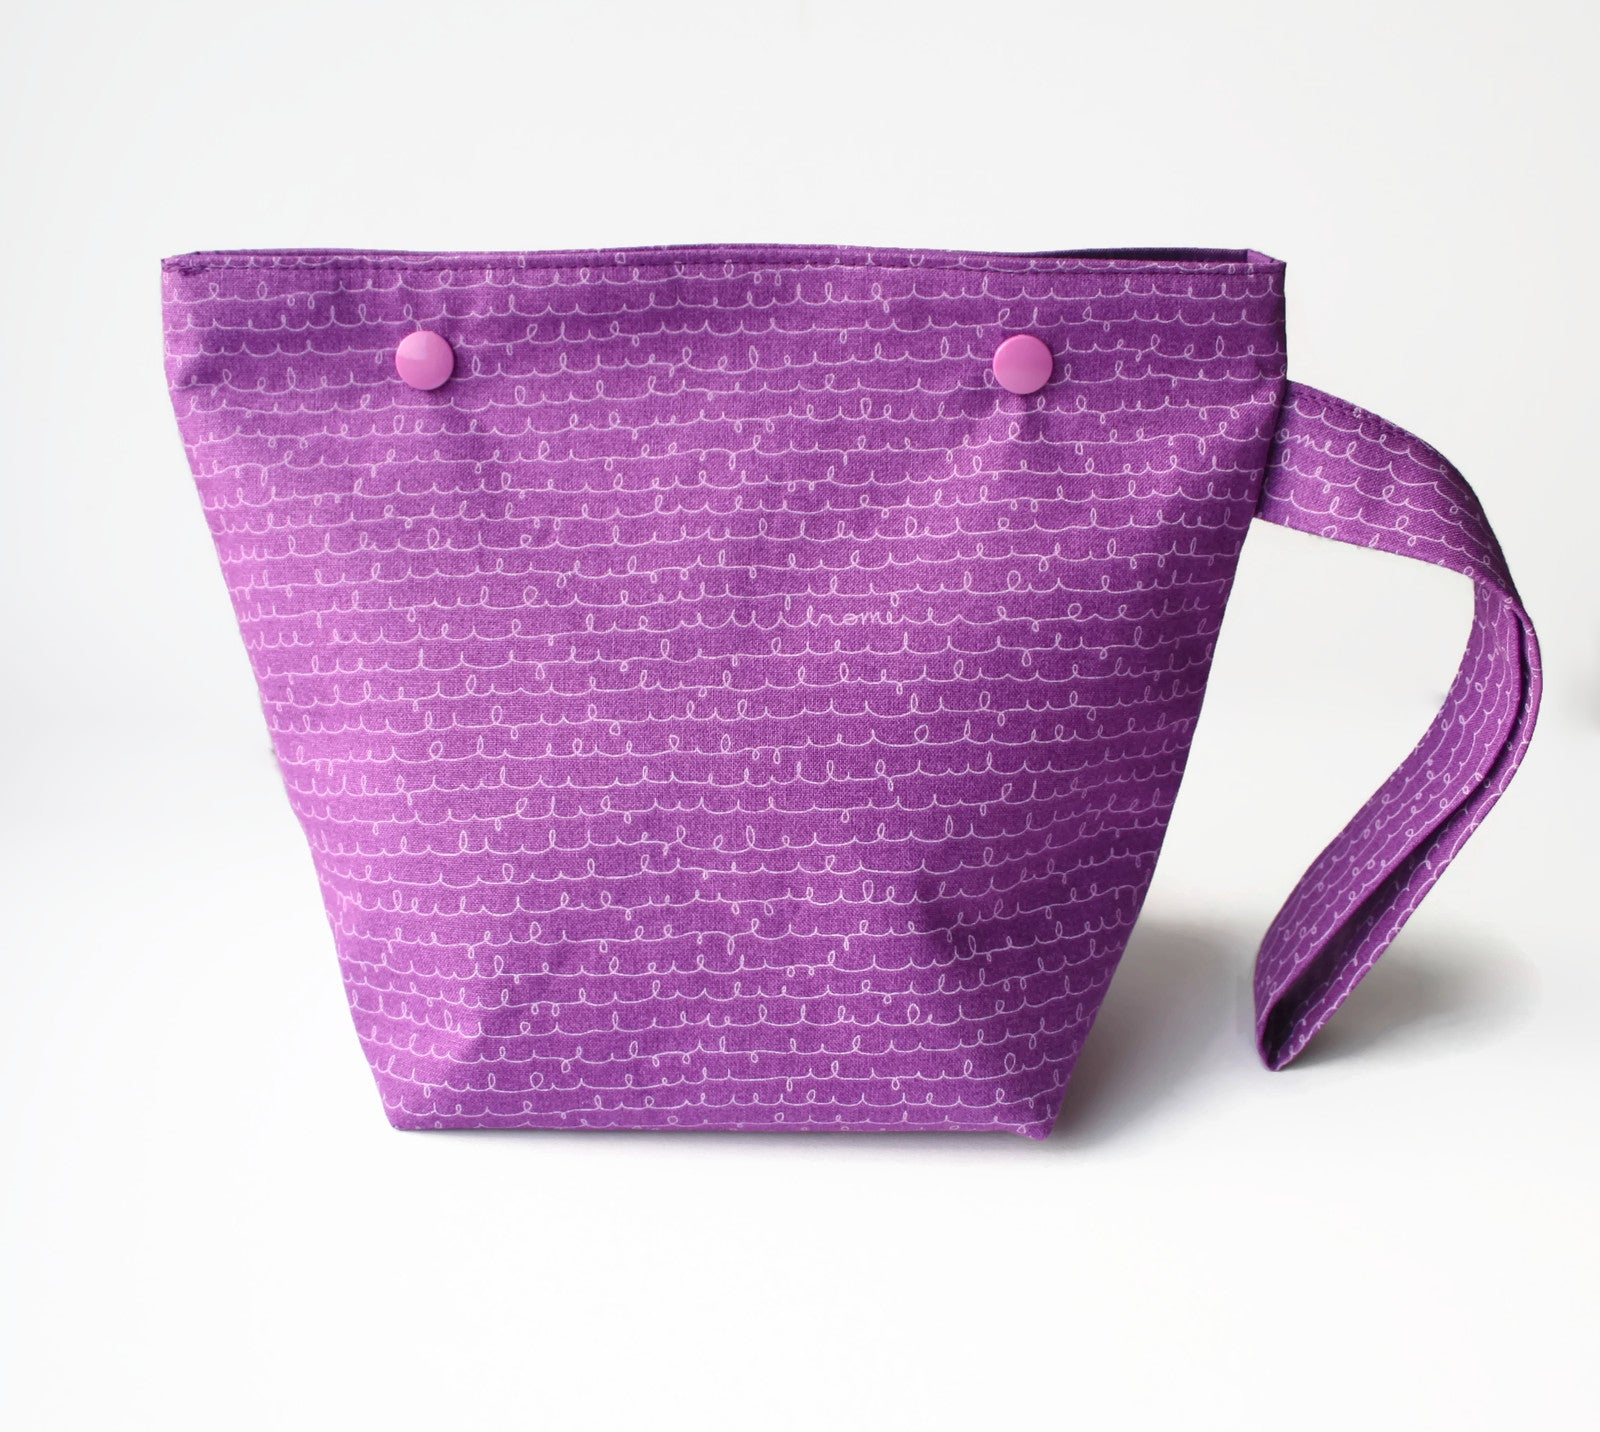 Purple Sock Knitting Project Bag with Snaps - Cherry Plum Tree